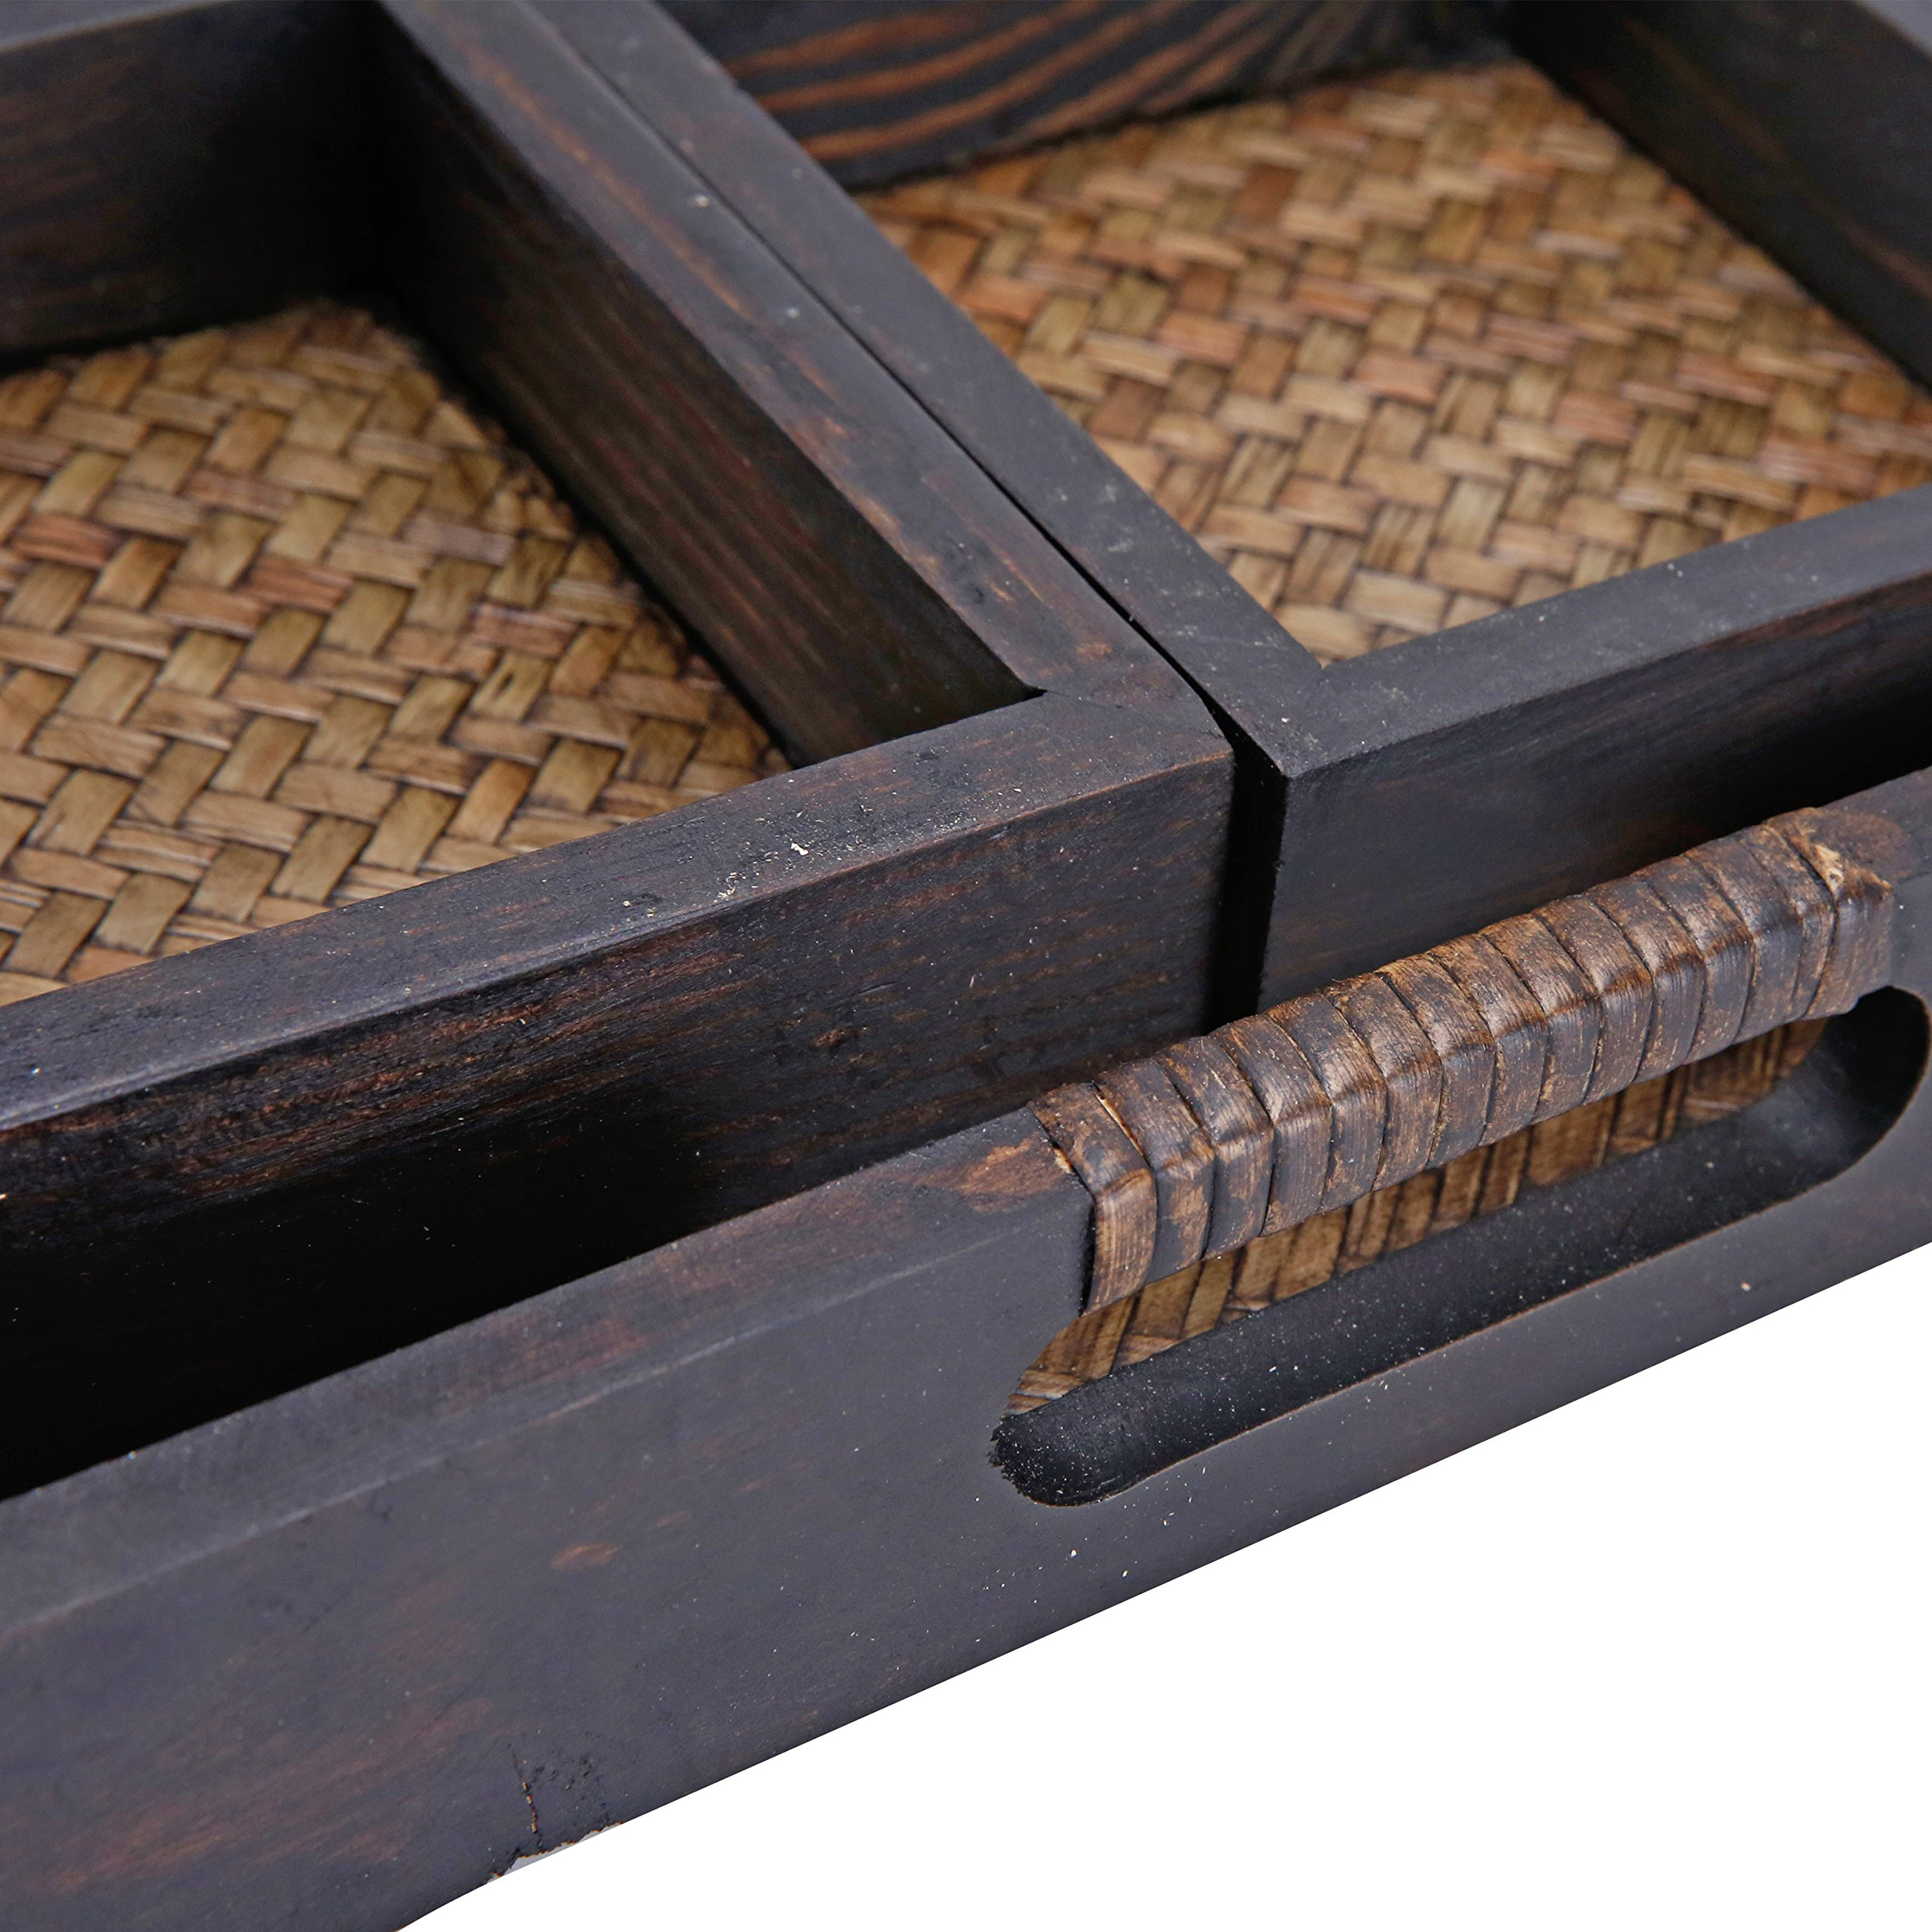 MyGift 7 Piece Flocked Nesting Mango Wood and Woven Rattan Jewelry Organizer Display Trays by MyGift (Image #6)